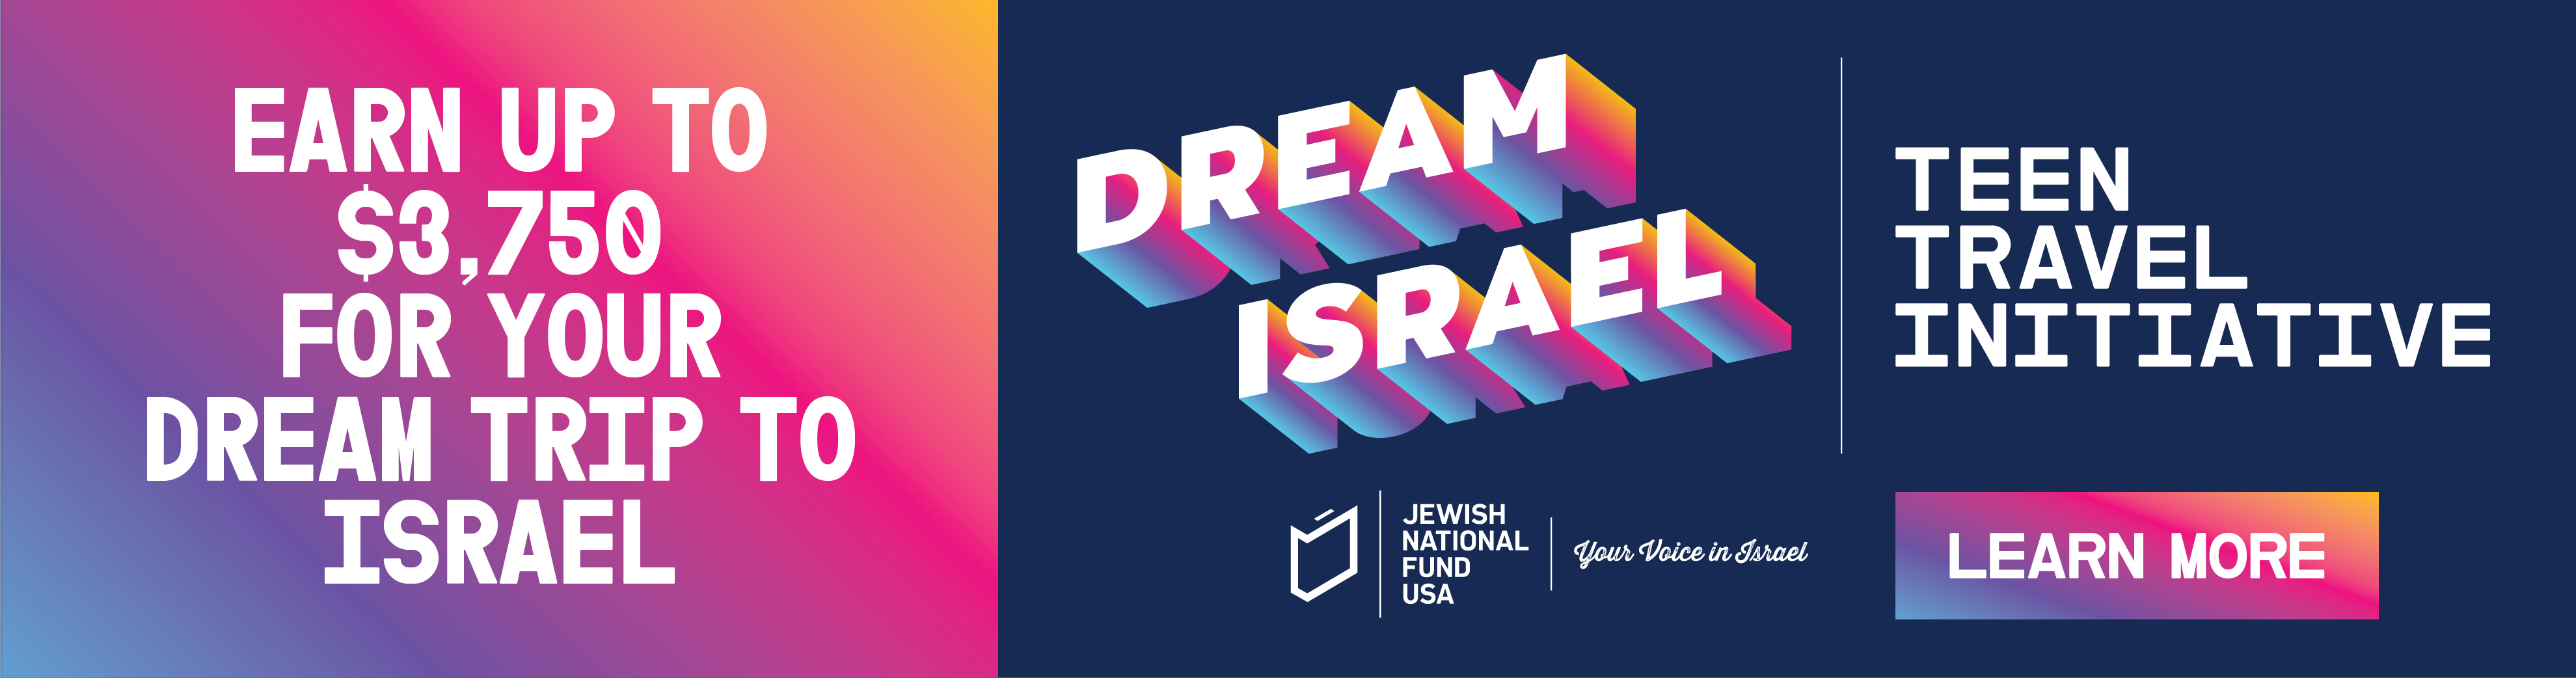 Dream Israel